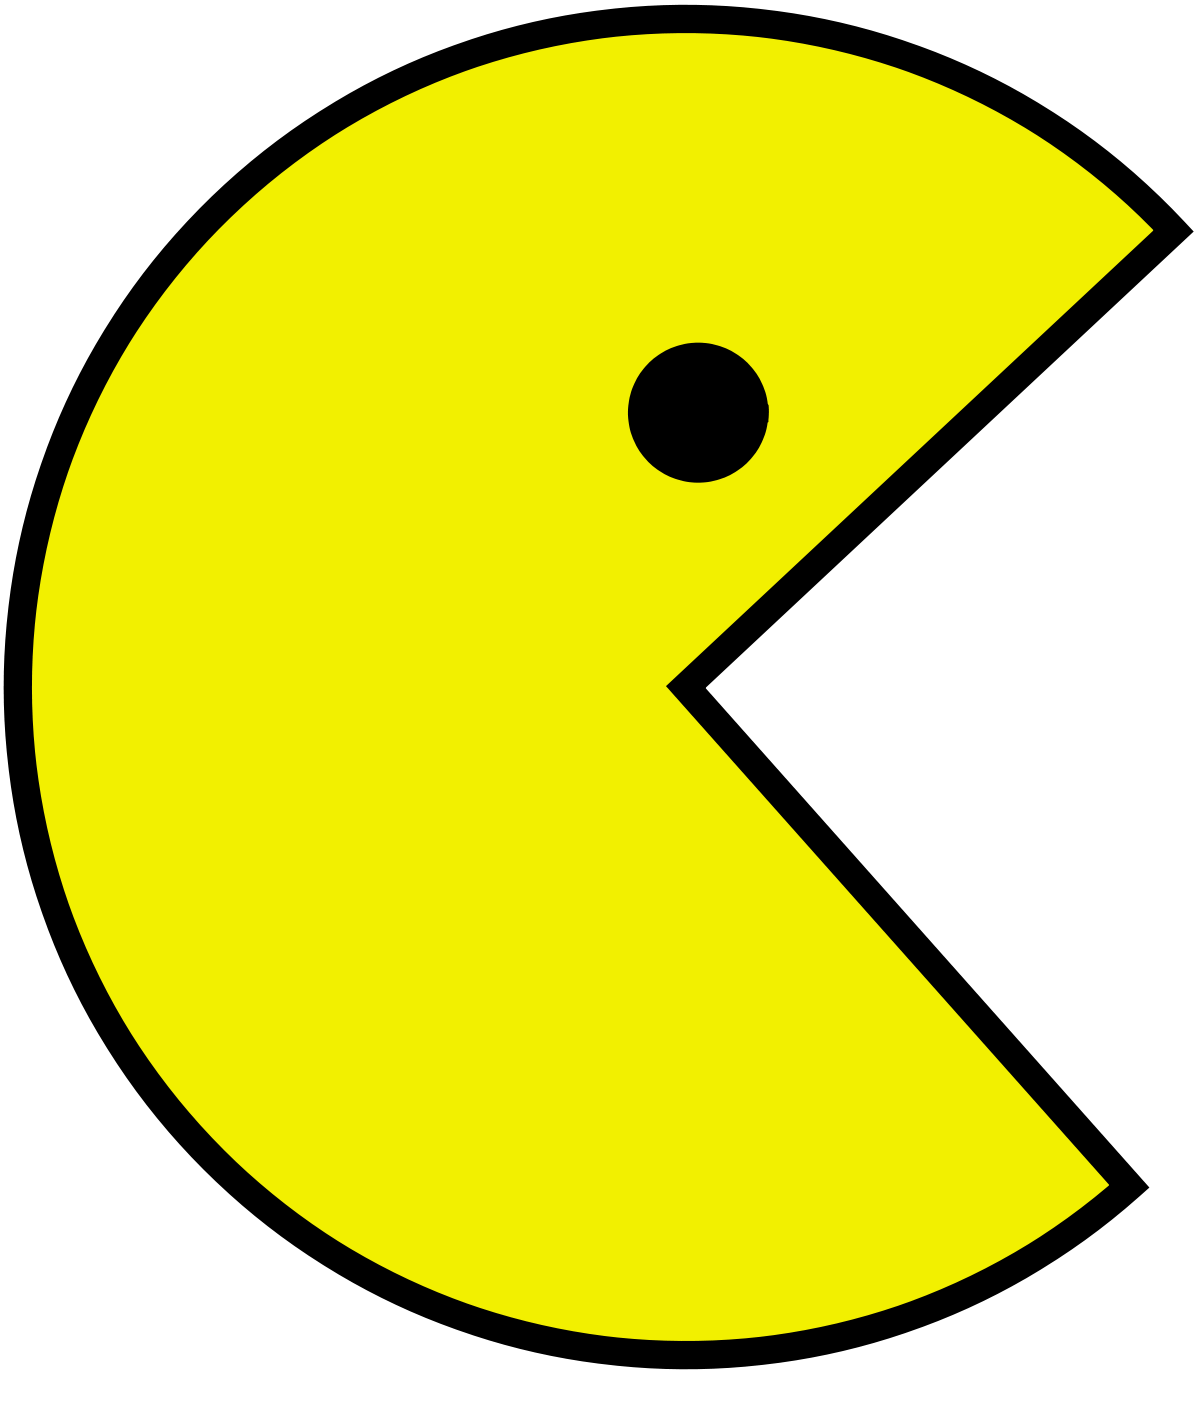 pac-man png yellow